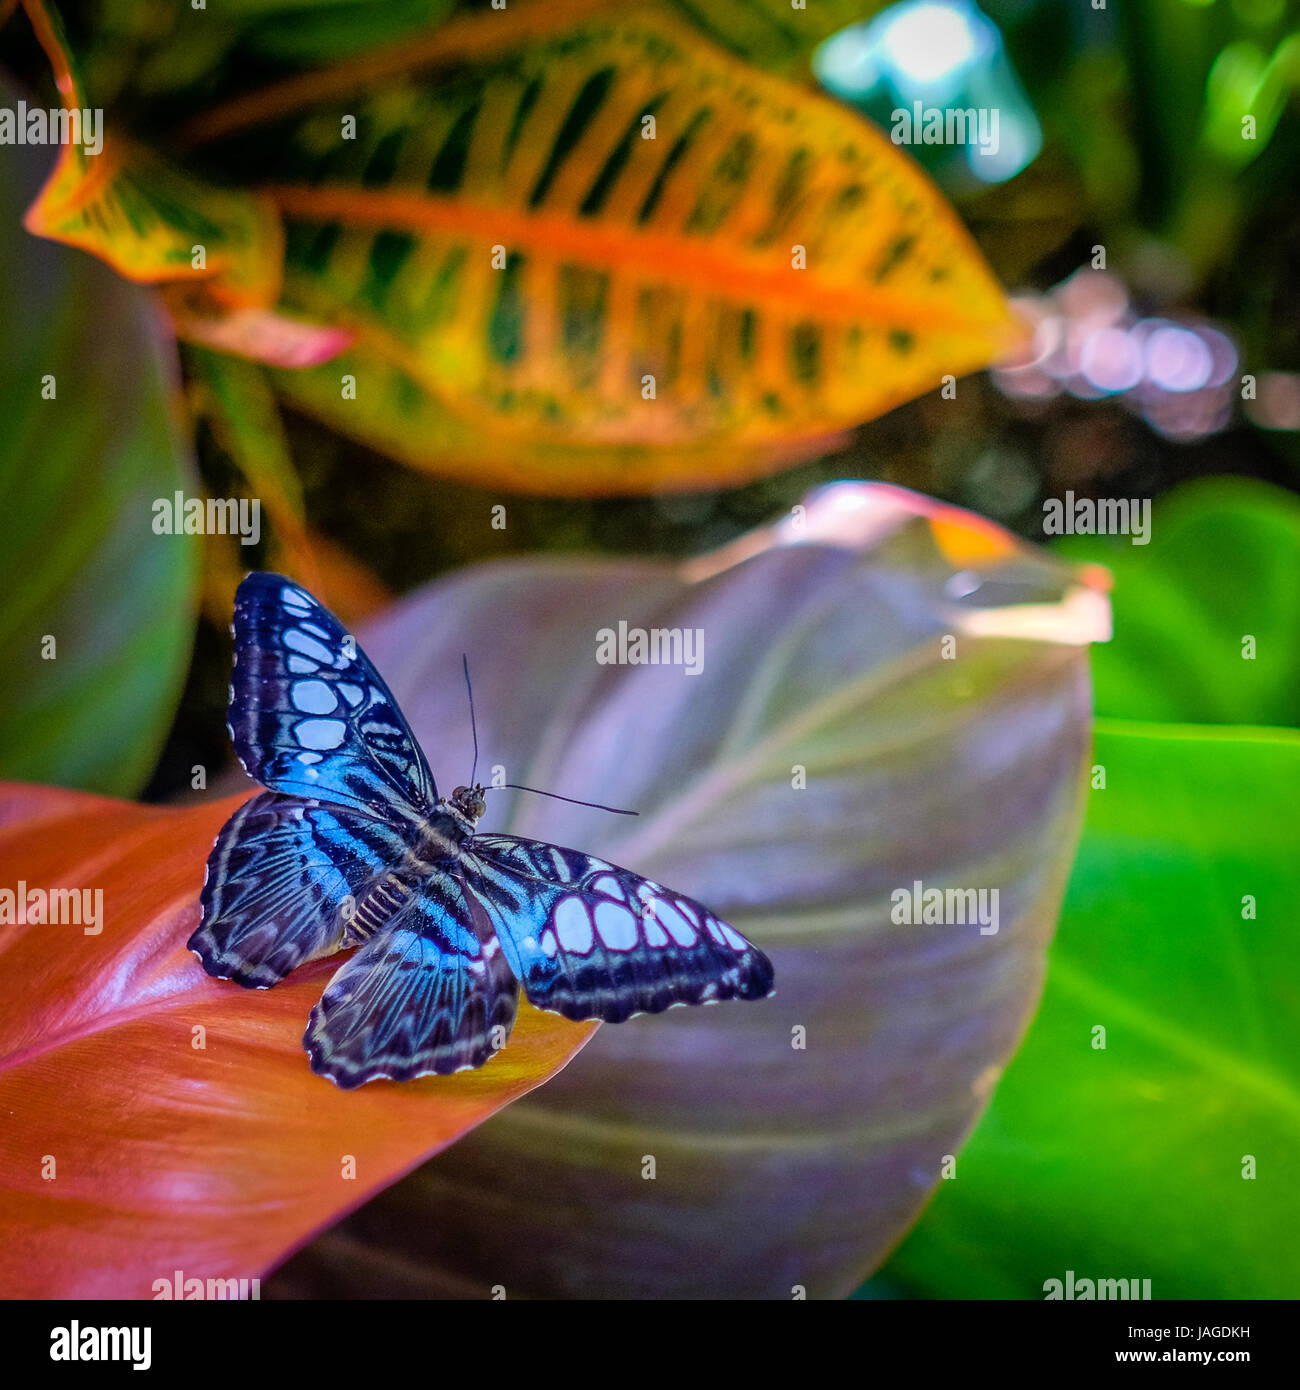 Beautiful bright iridescent blue butterfly resting on a tropical plant in Calloway Gardens, Georgia, USA. - Stock Image